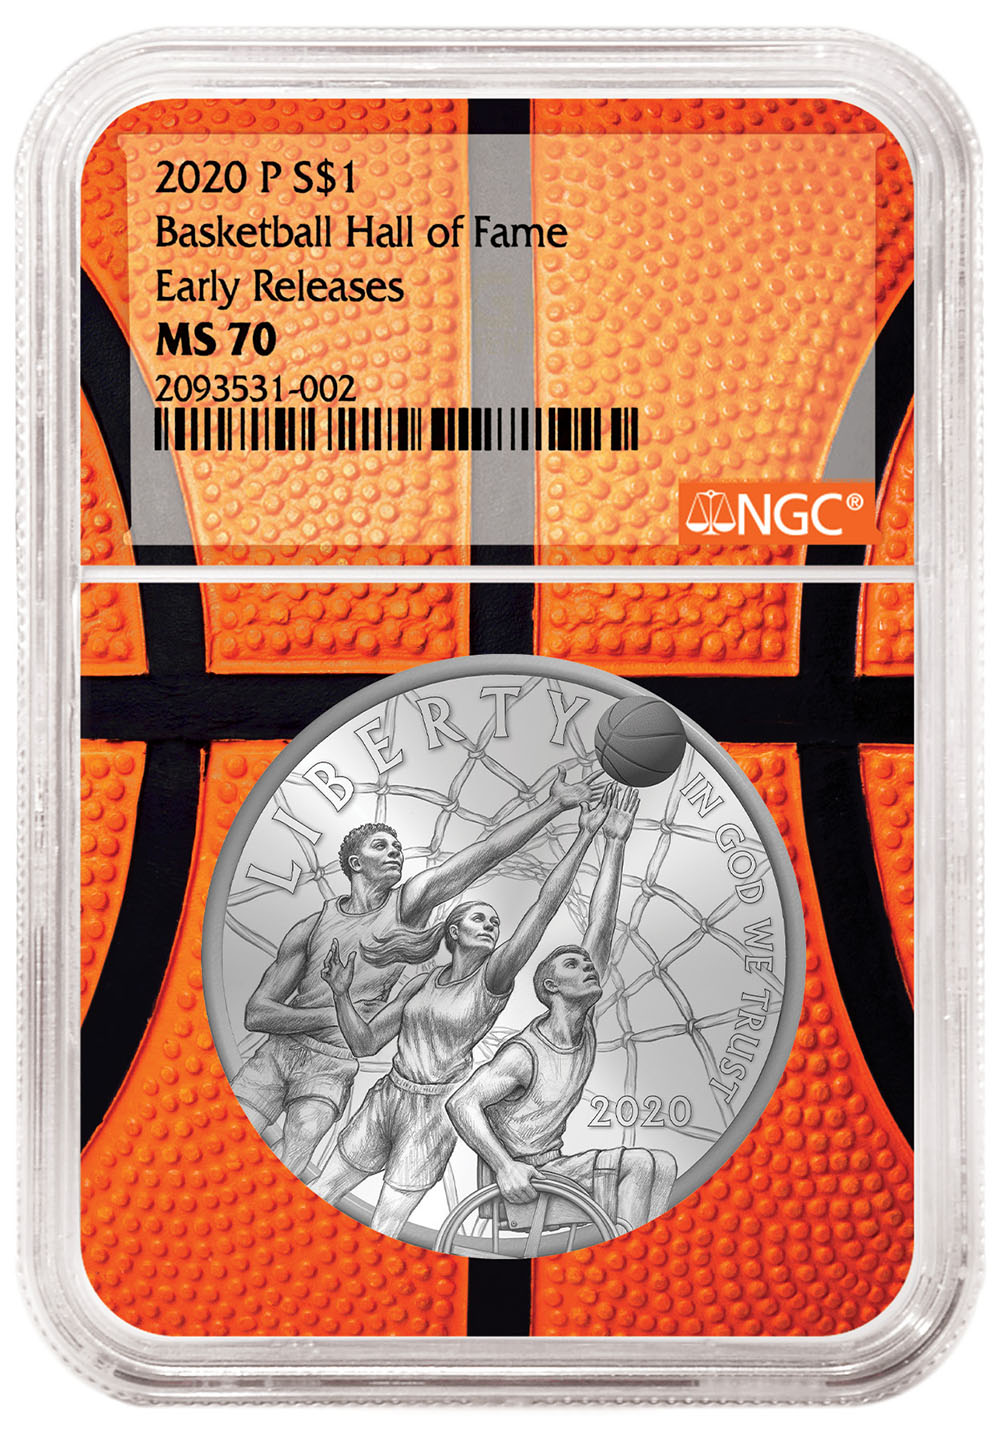 thumbnail image for NGC Announces All-Star Lineup for the 2020 Basketball Hall of Fame Commemorative Coins